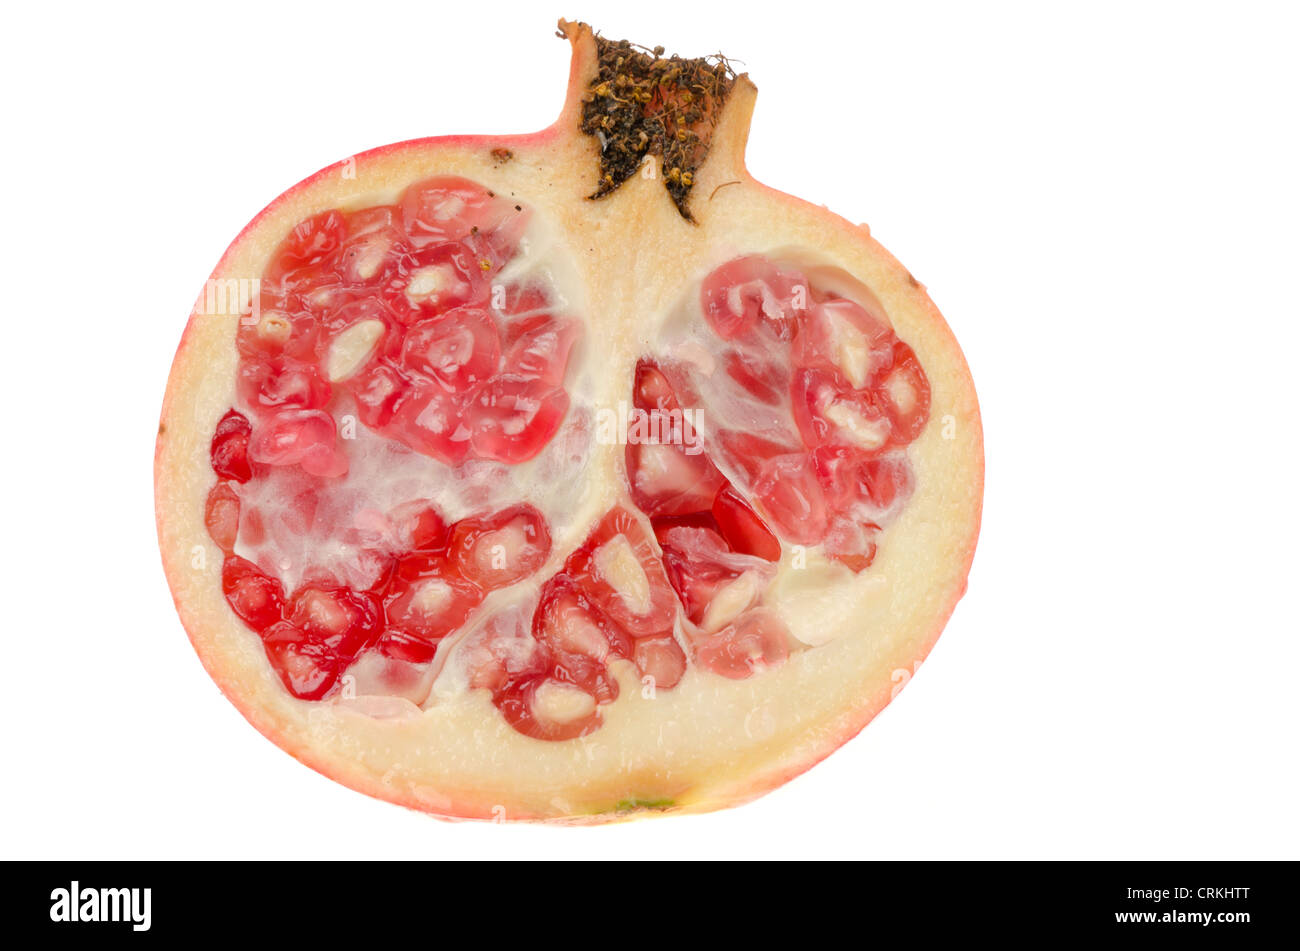 Fresh ripe pomegranate that has been sliced in half - studio shot with a white background - Stock Image